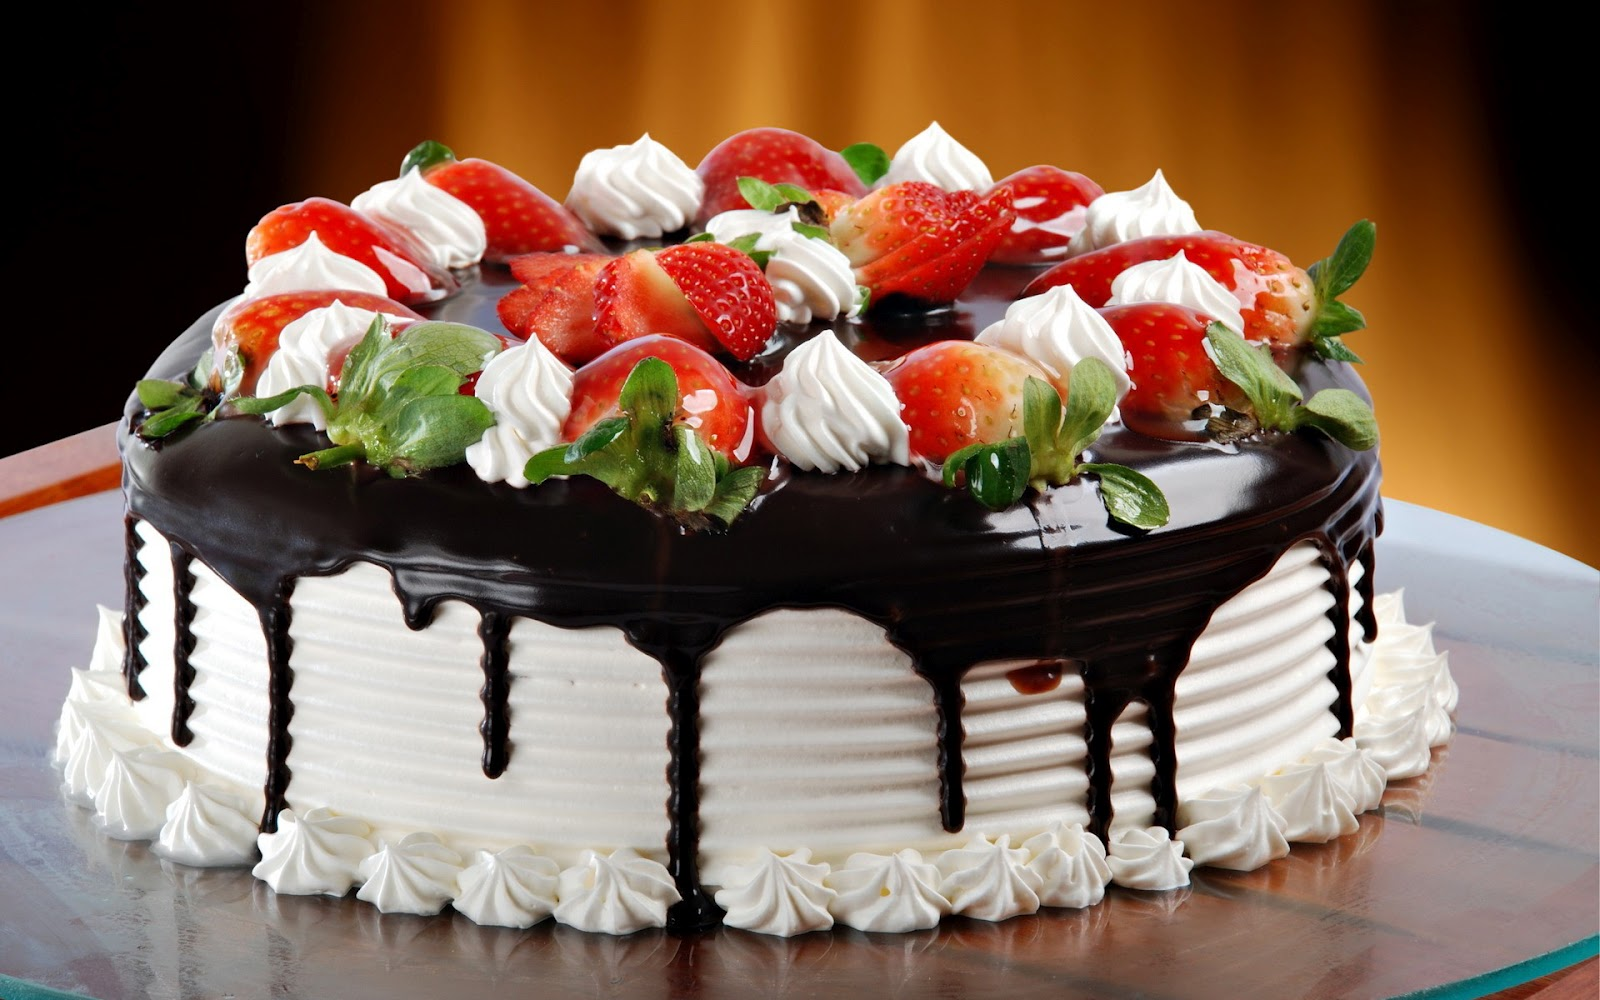 Cake Design With Strawberries : August 2014 ~ CoctSite